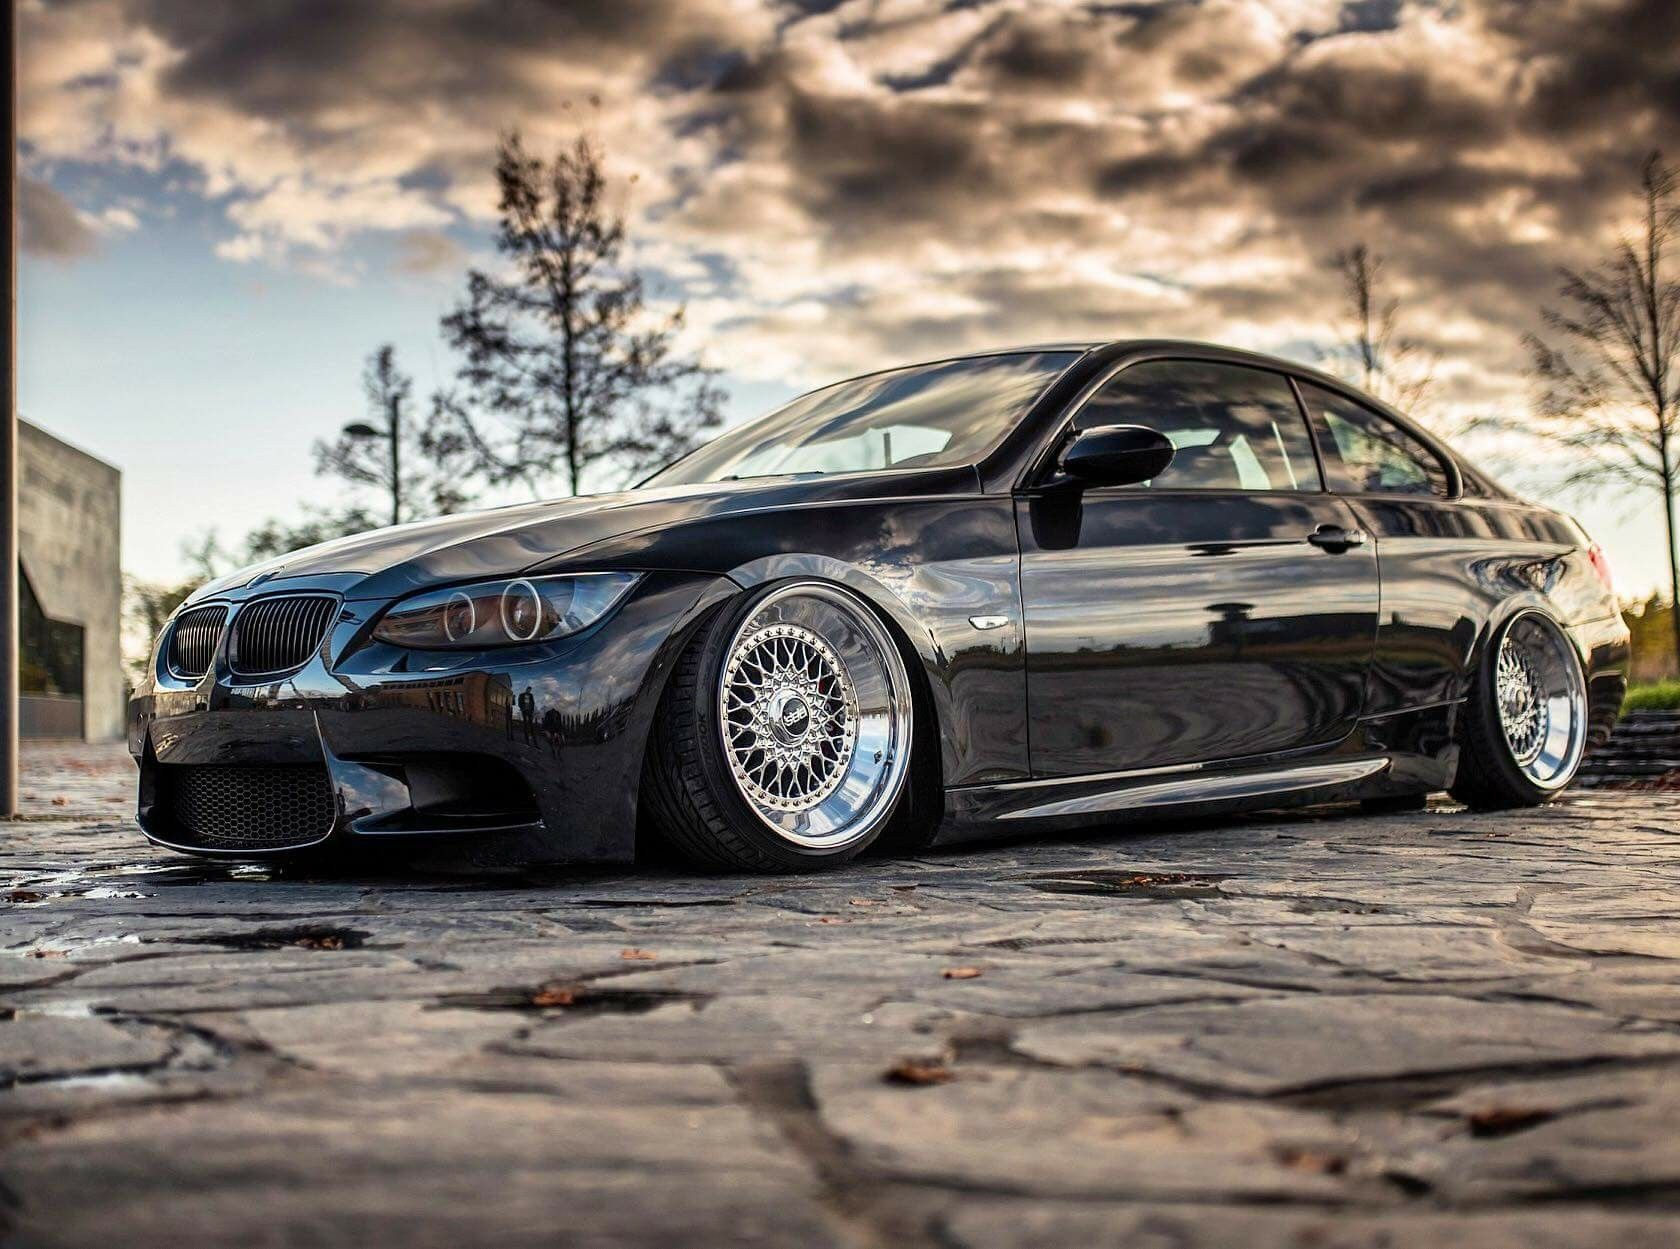 Bmw E92 3 Series Black Deep Dish Slammed With Images Bmw